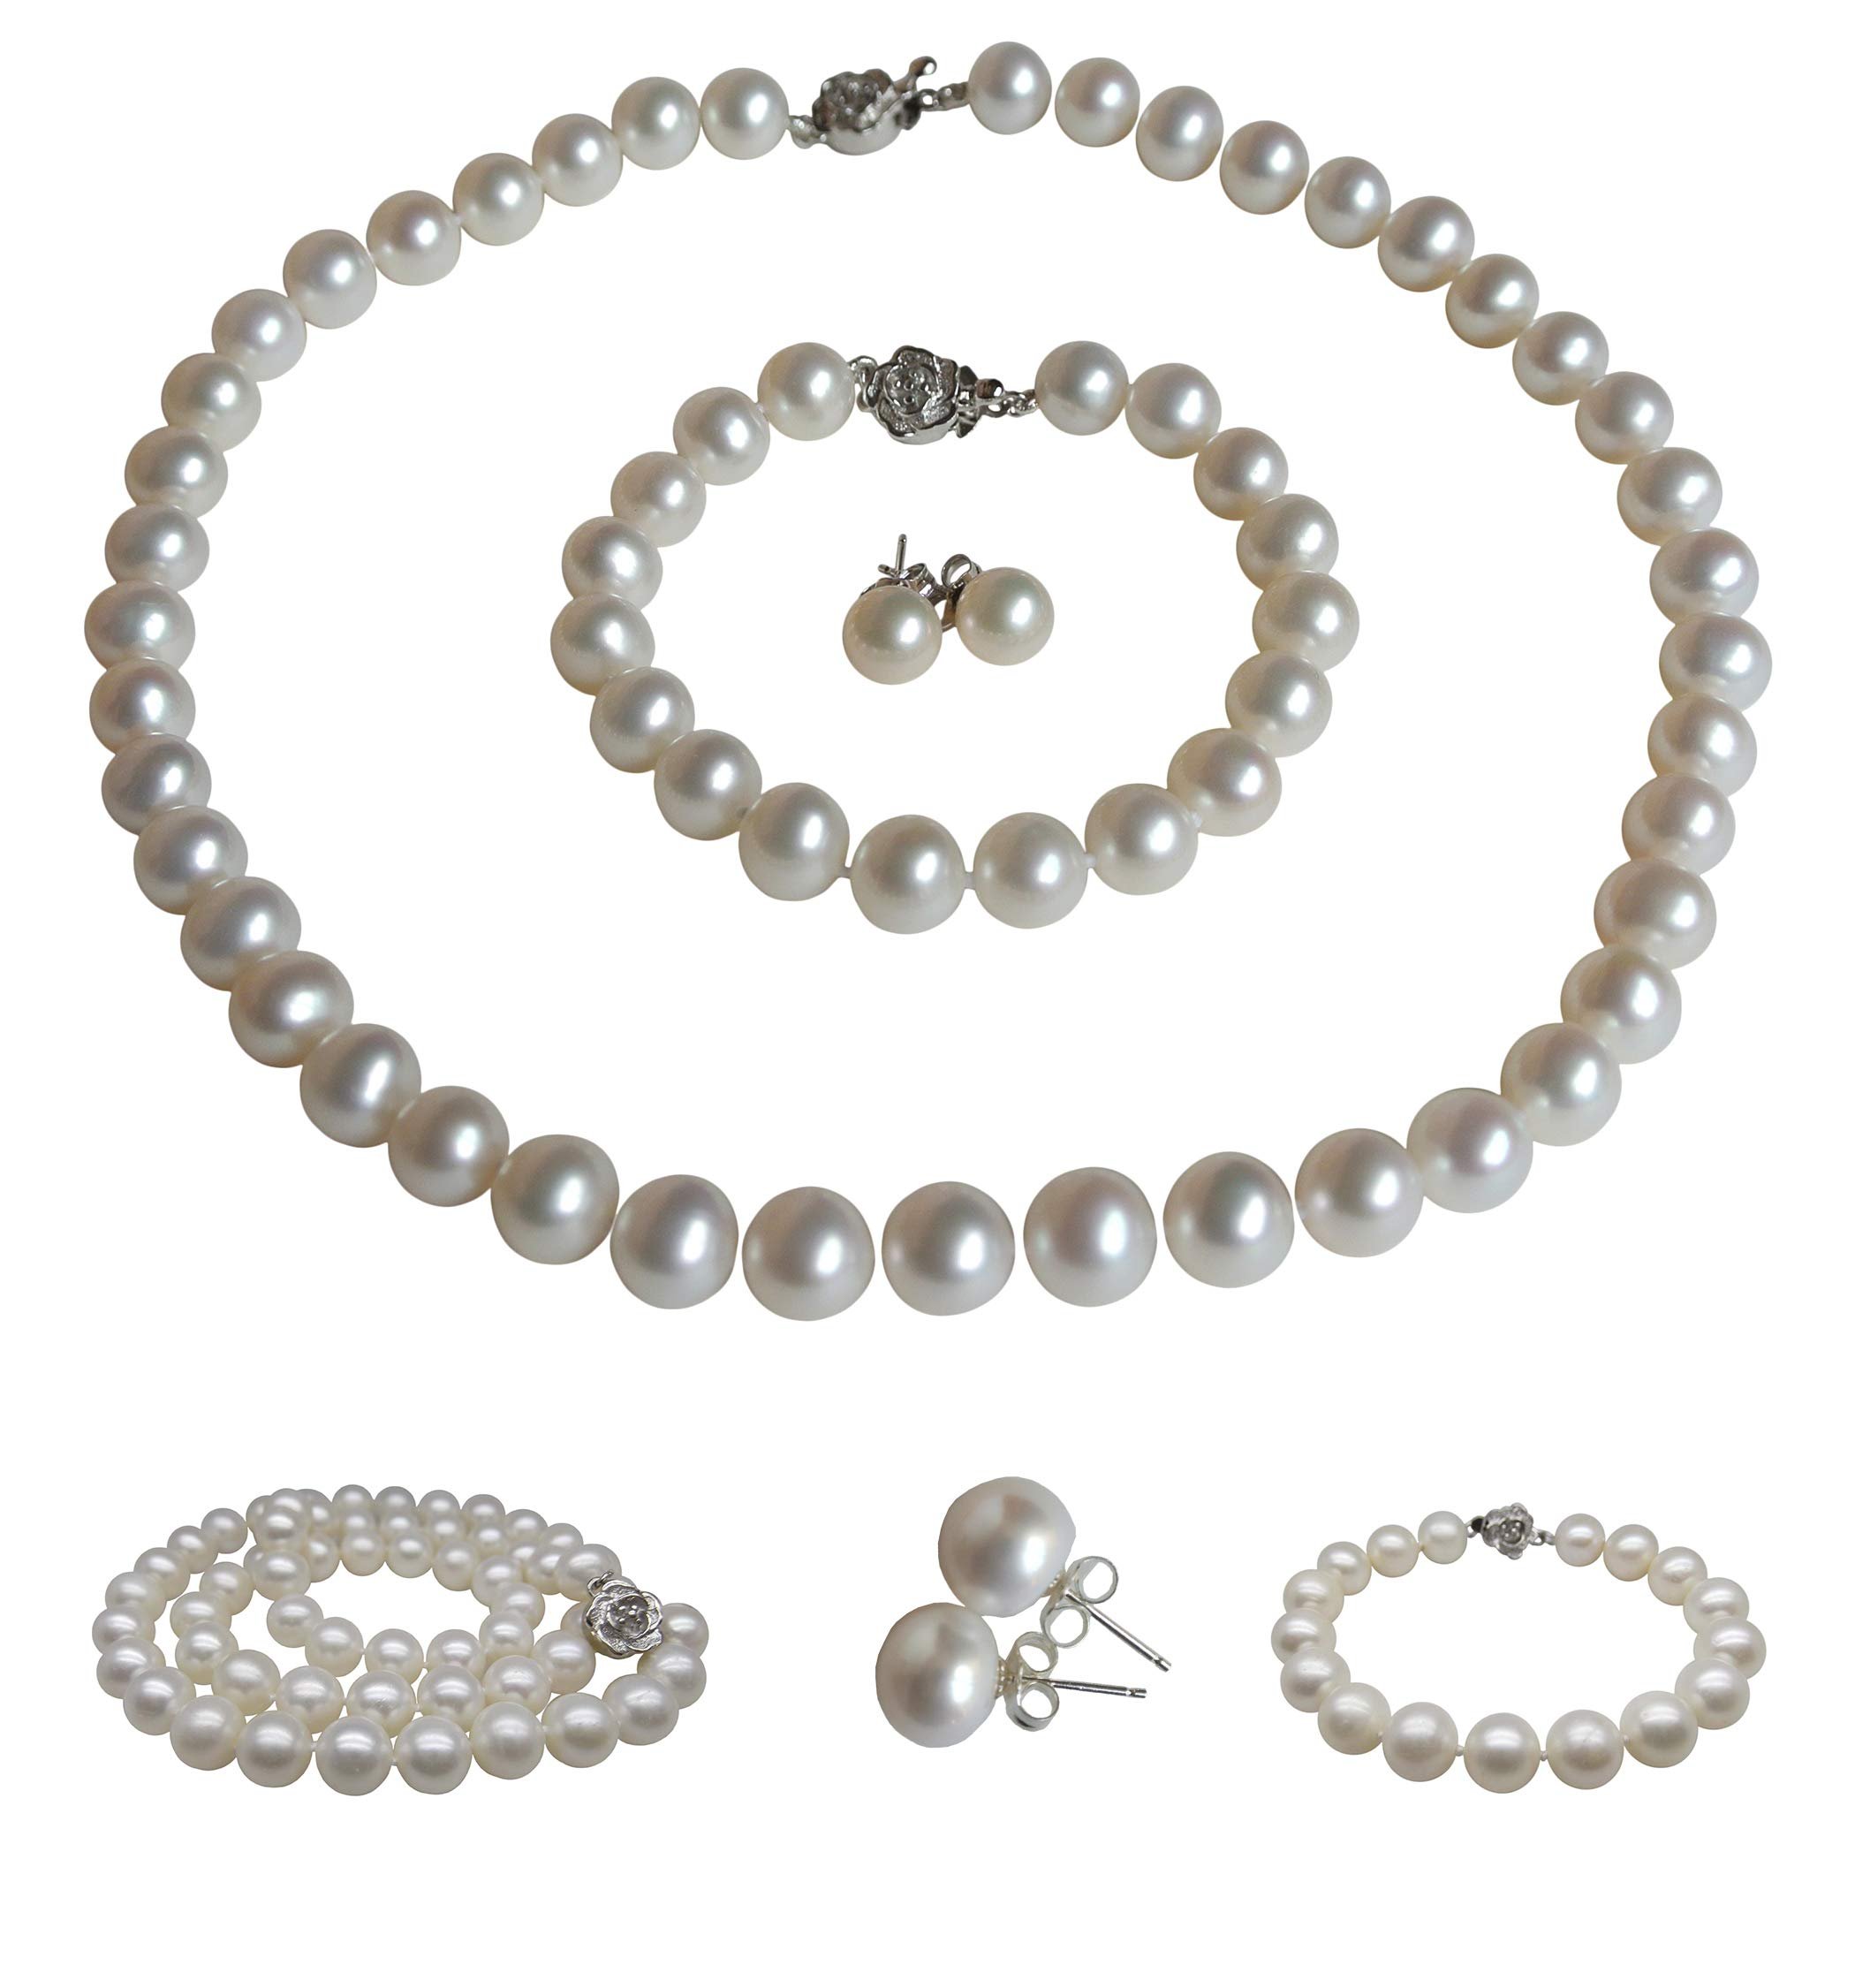 Pearl Romance Choker 16'' inch 3pc Set Cultured Round White Strand Pearl Necklace Bracelet Stud Earrings Genuine Freshwater 6mm 7mm 8mm 9mm 10mm 11mm (7.0-7.5mm)